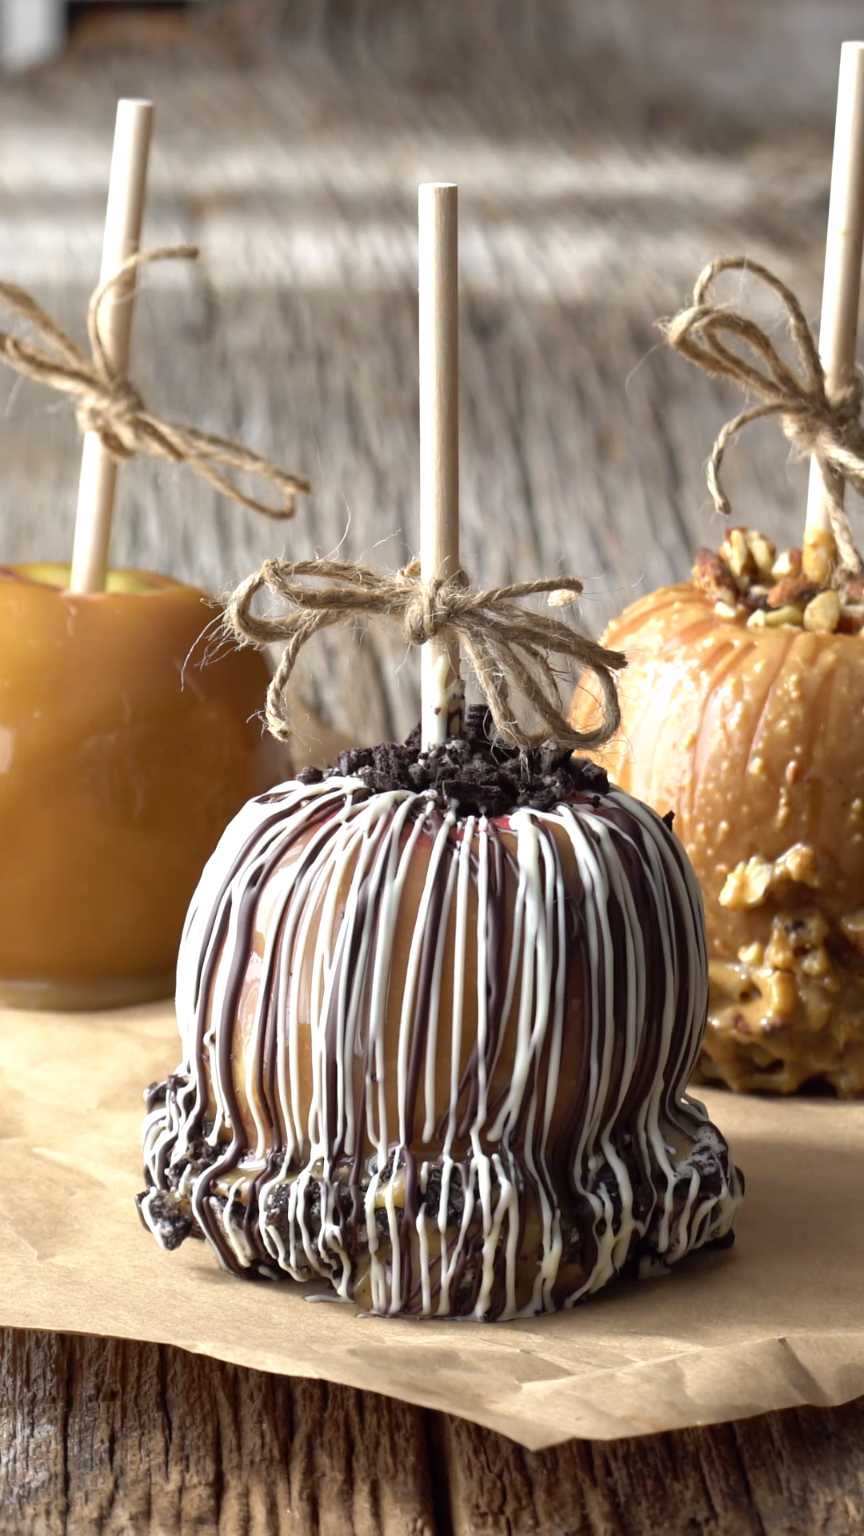 Over the Top Caramel Apples #caramelapples